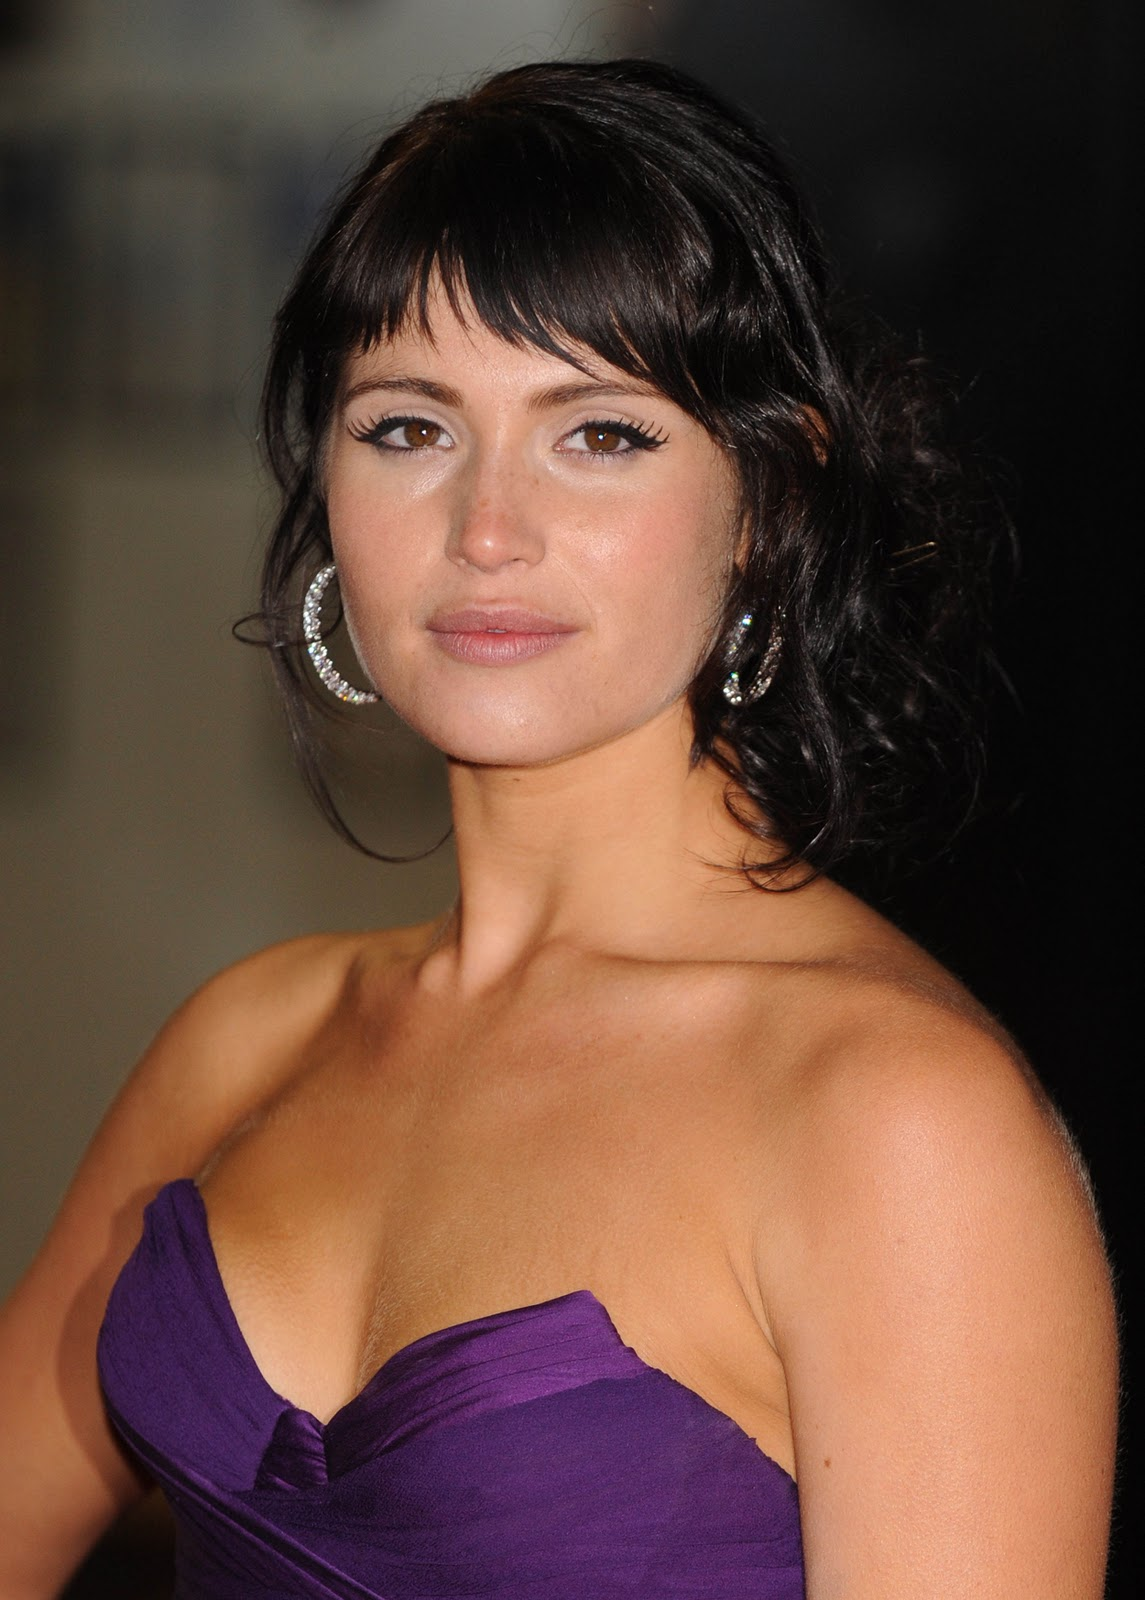 http://1.bp.blogspot.com/-h47T3cn_9Wc/UTs-I-_bgqI/AAAAAAAA8HM/ATF-2vAl-iA/s1600/Gemma-Arterton-cleavage-boobs-size-actress.jpg